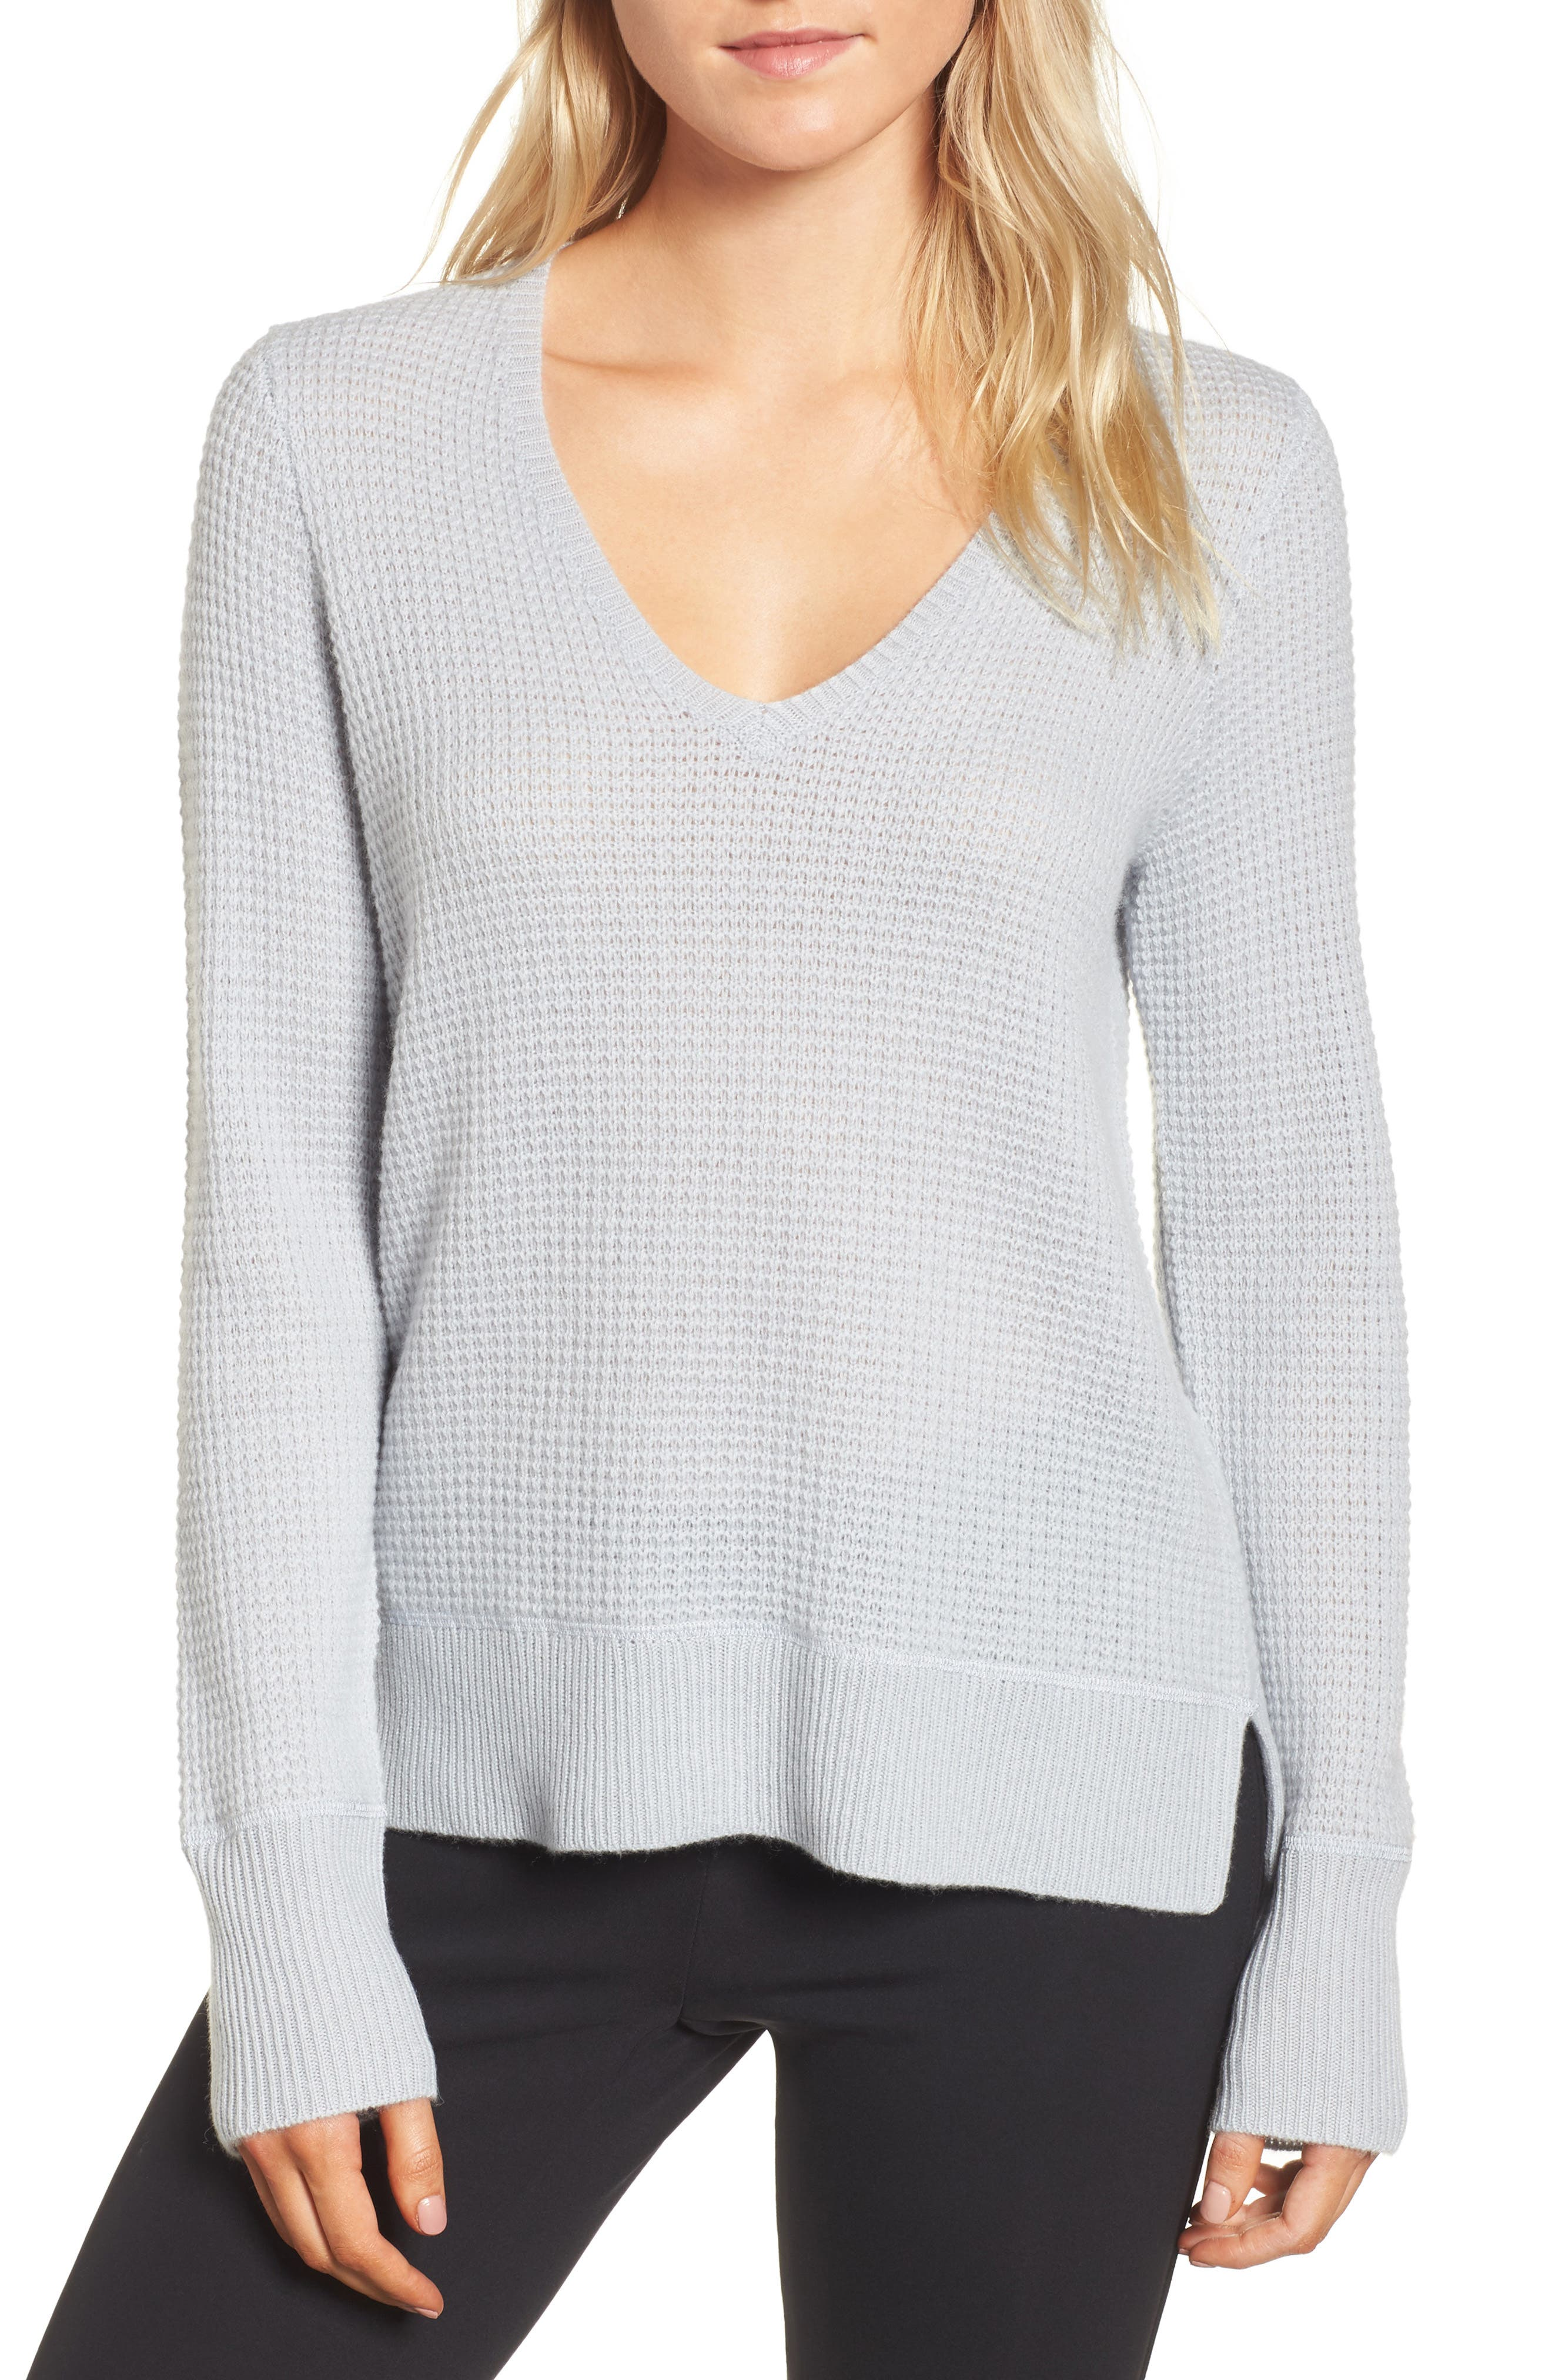 Main Image - James Perse Cashmere Thermal Sweater